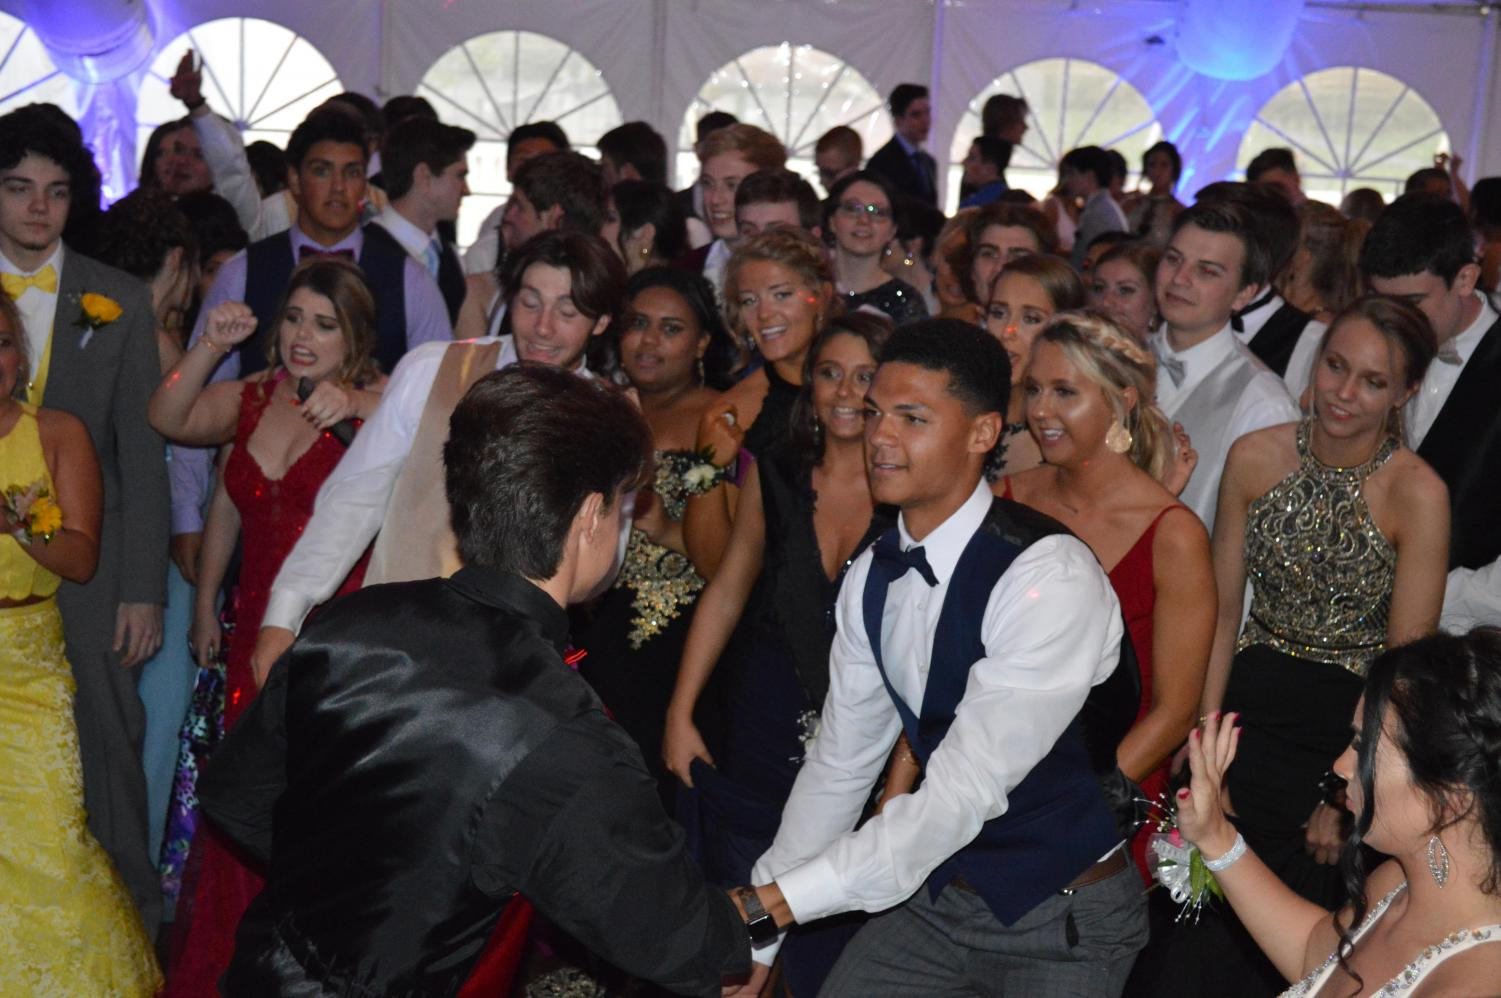 The 2018 OHS prom